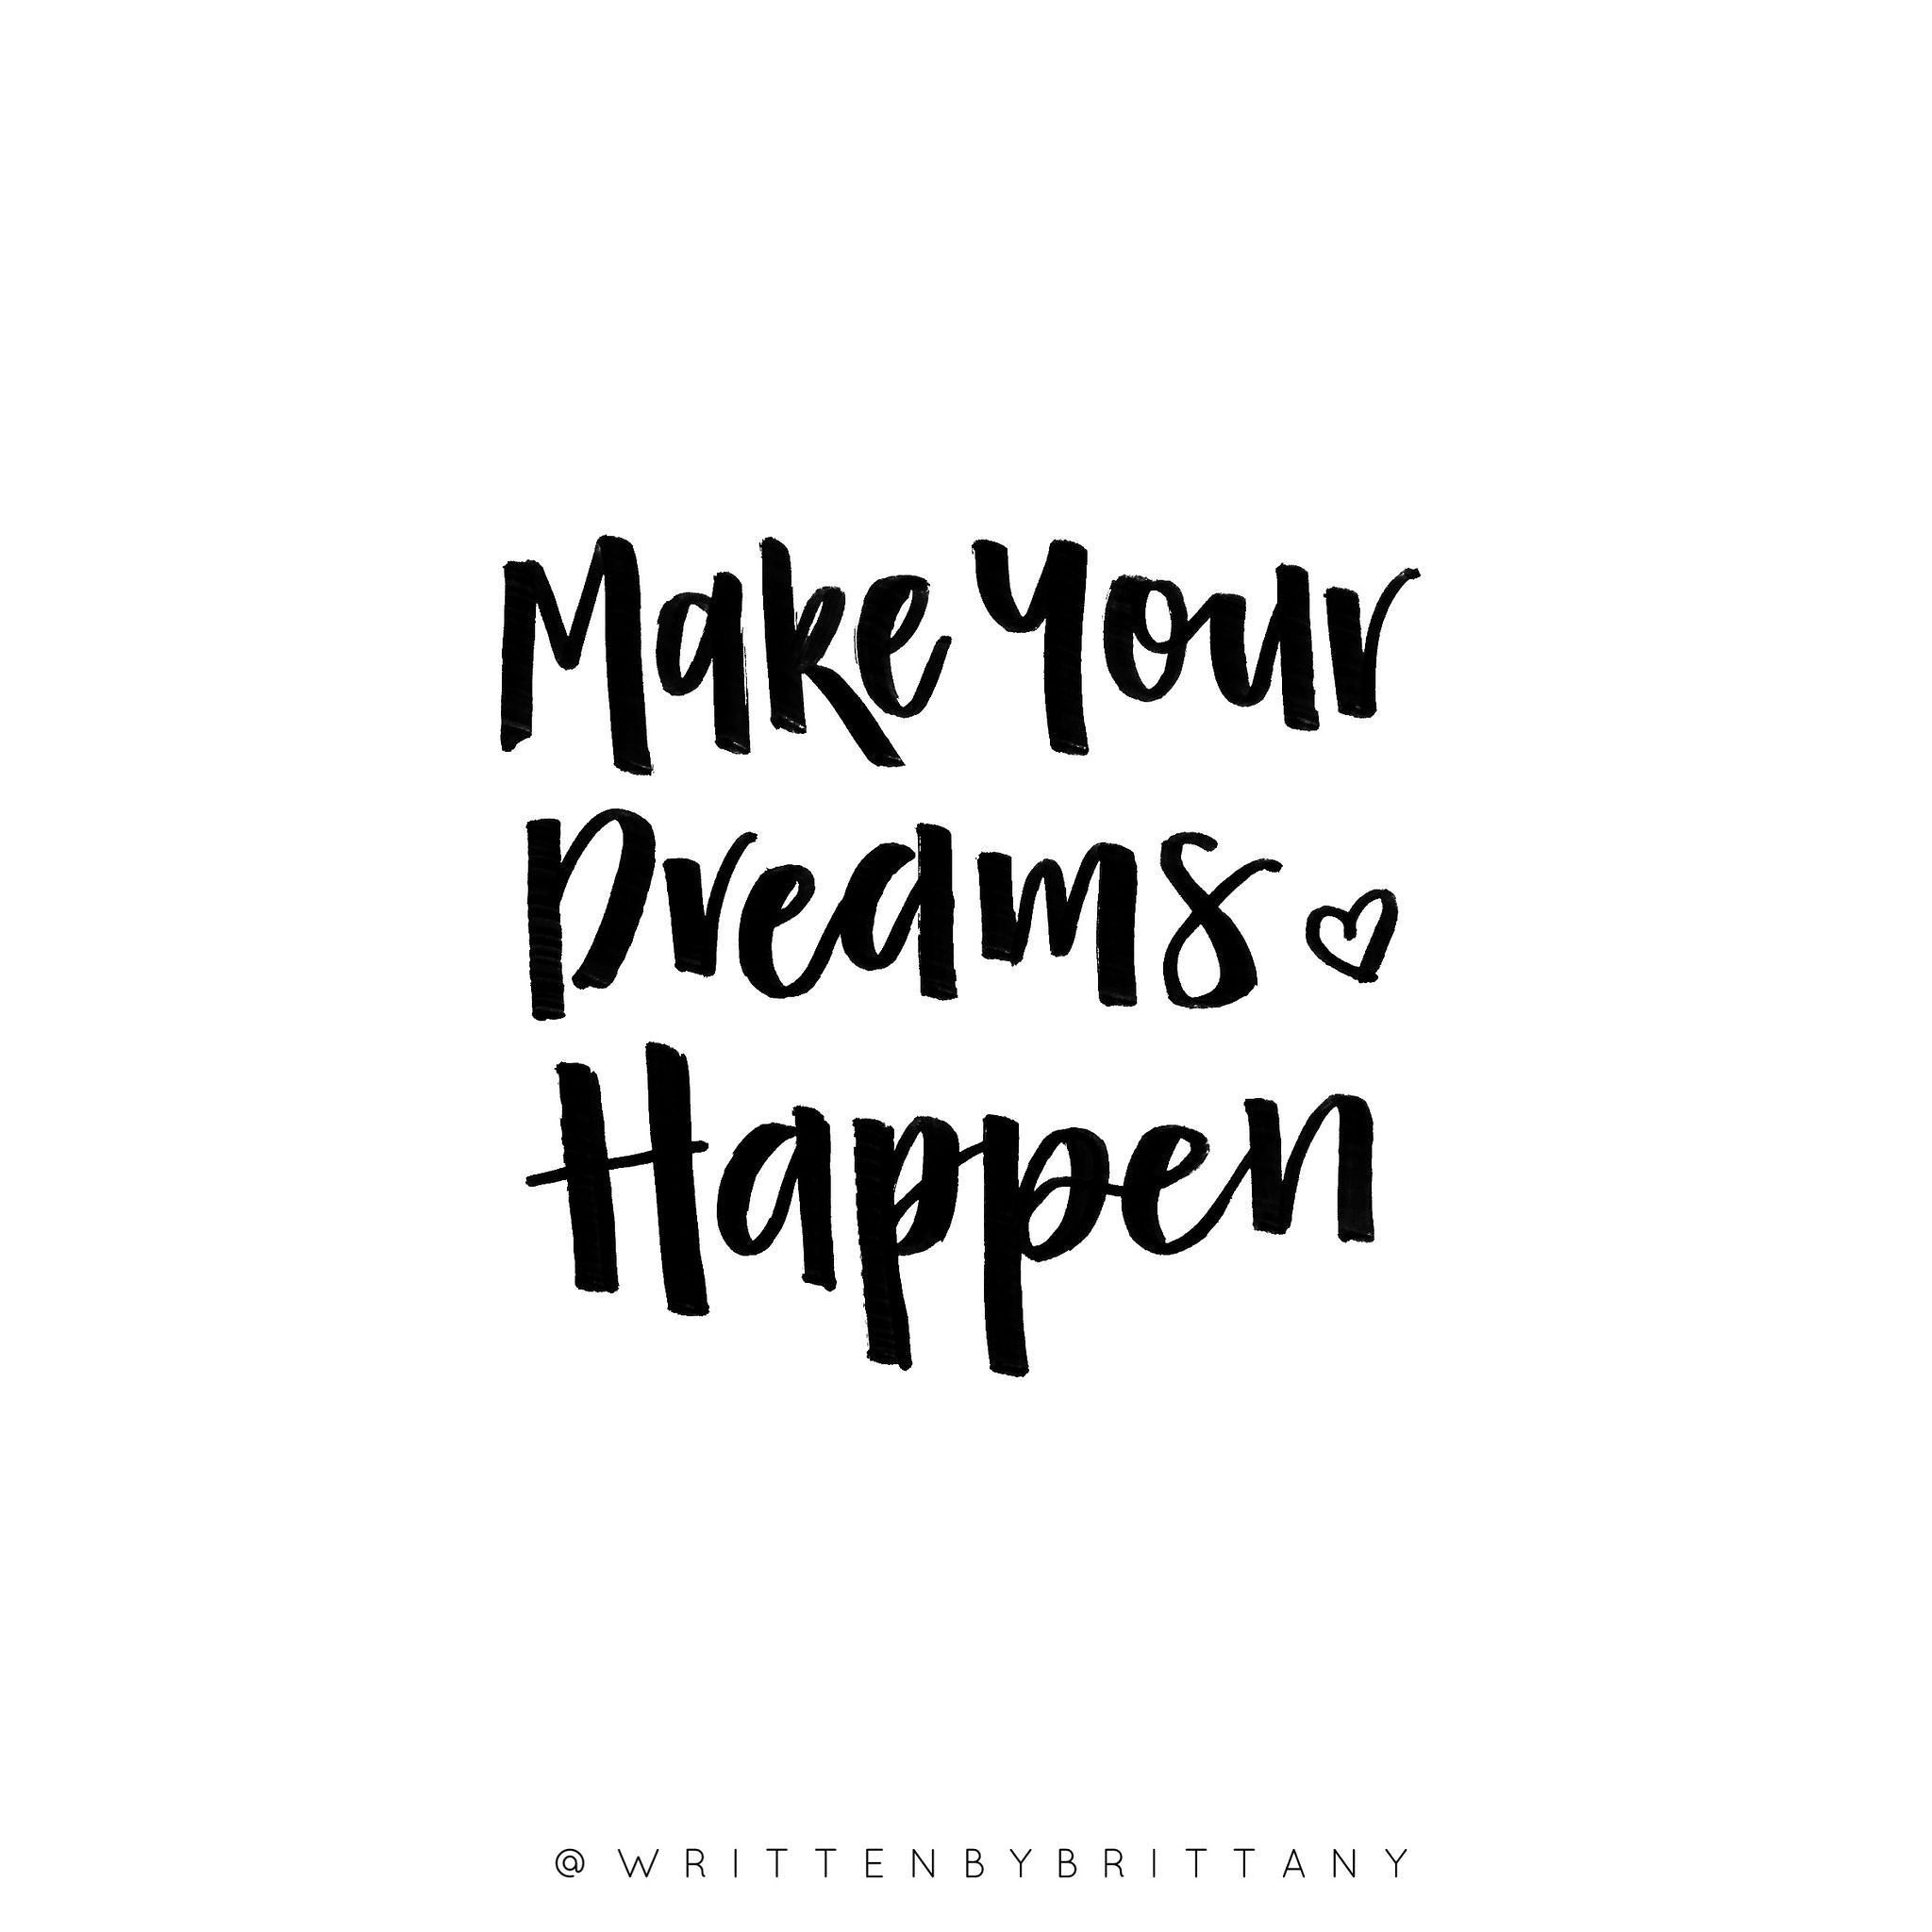 Make your dreams happen hand lettered quotes